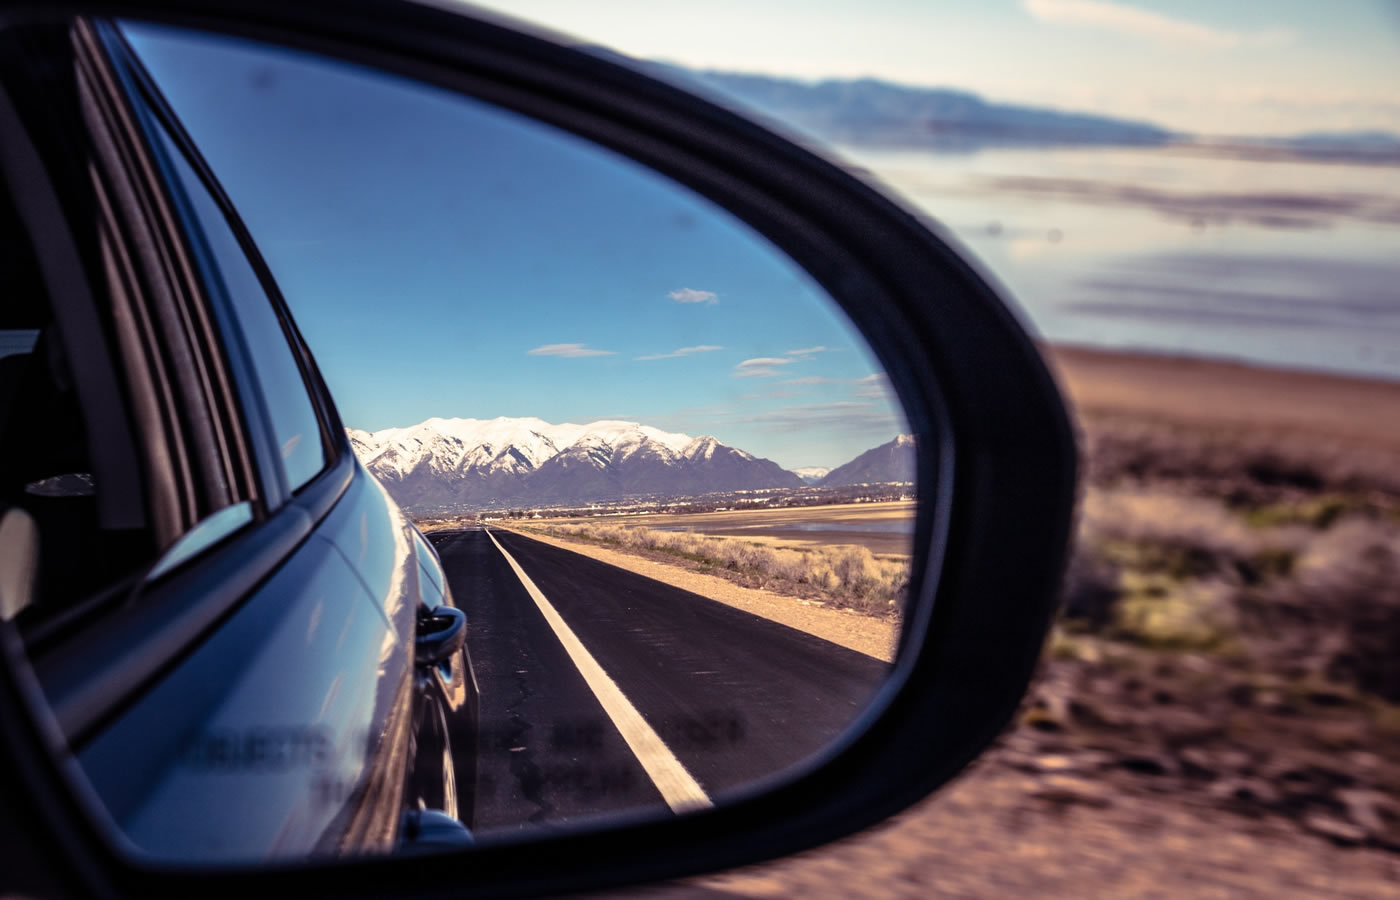 13 Questions to Discover Your Management Blind Spots